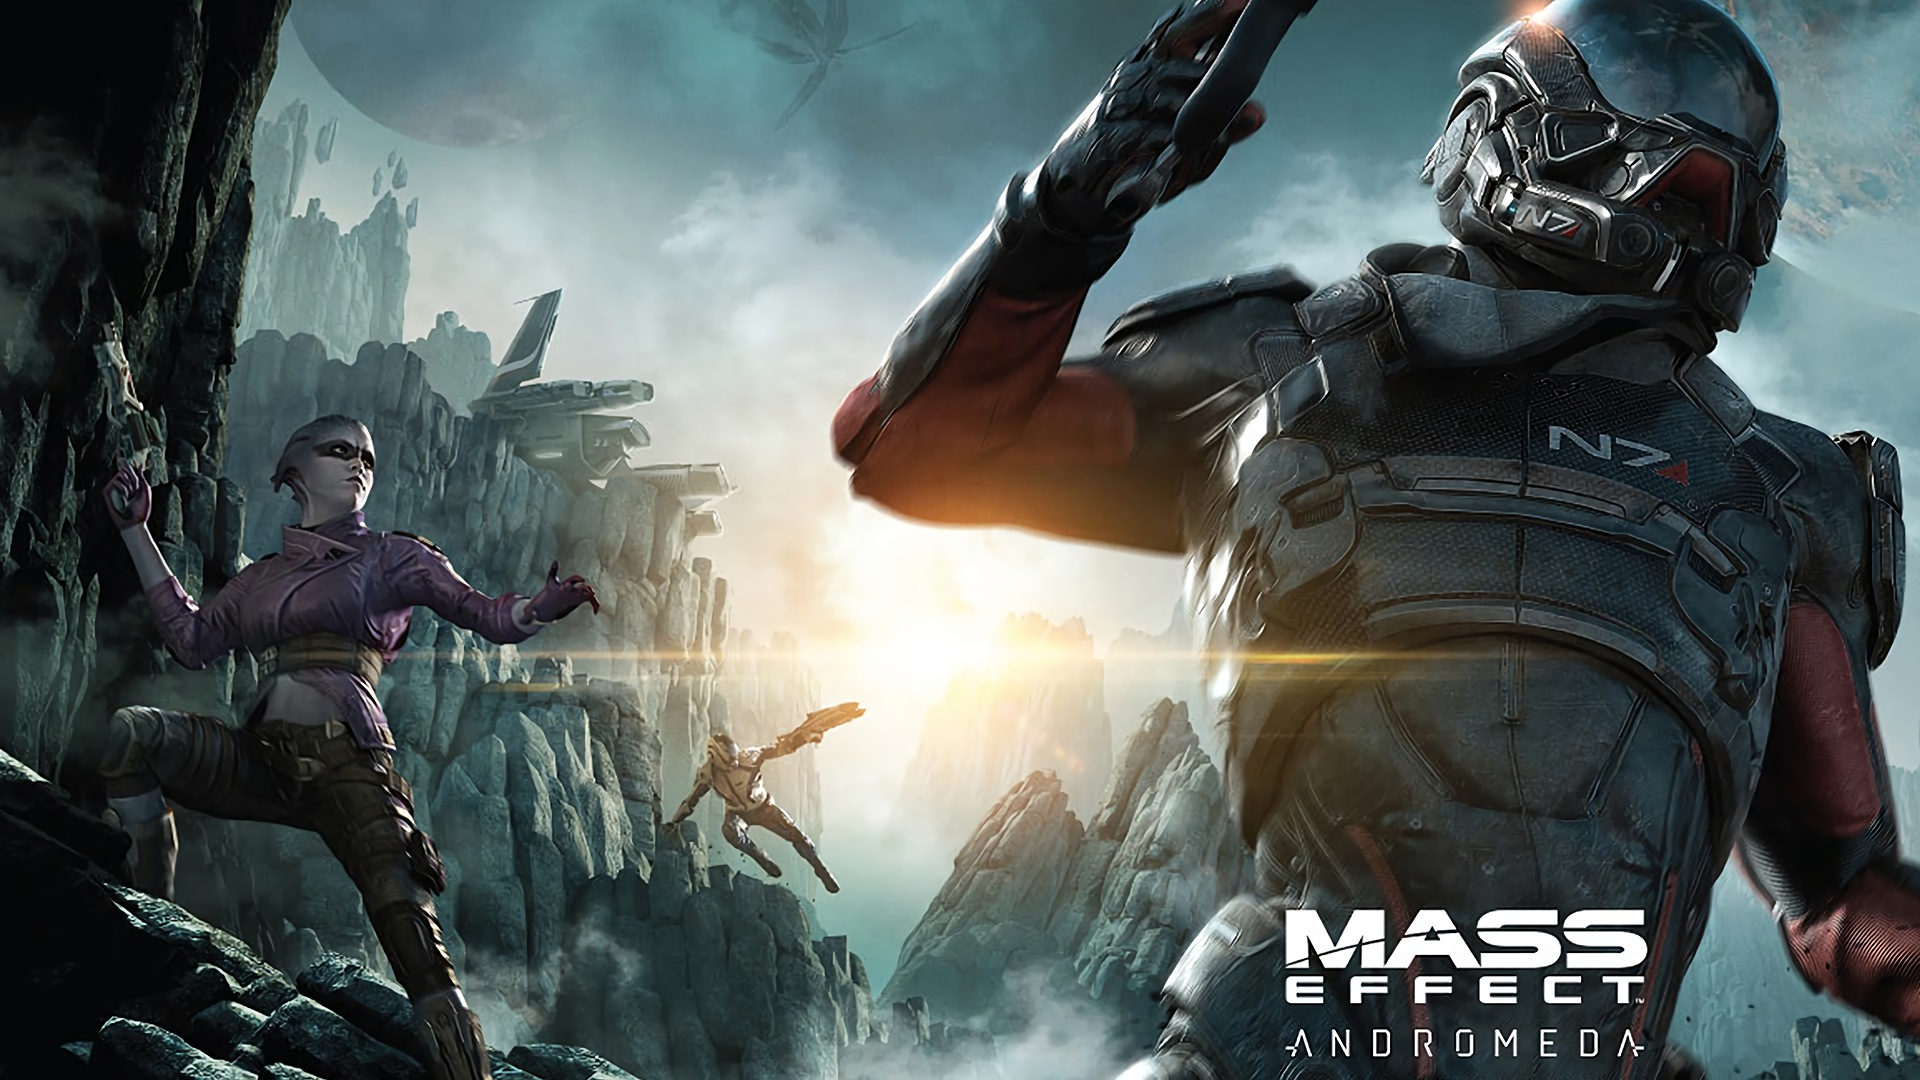 Mass Effect Andromeda Wallpapers Pictures Images 1920x1080